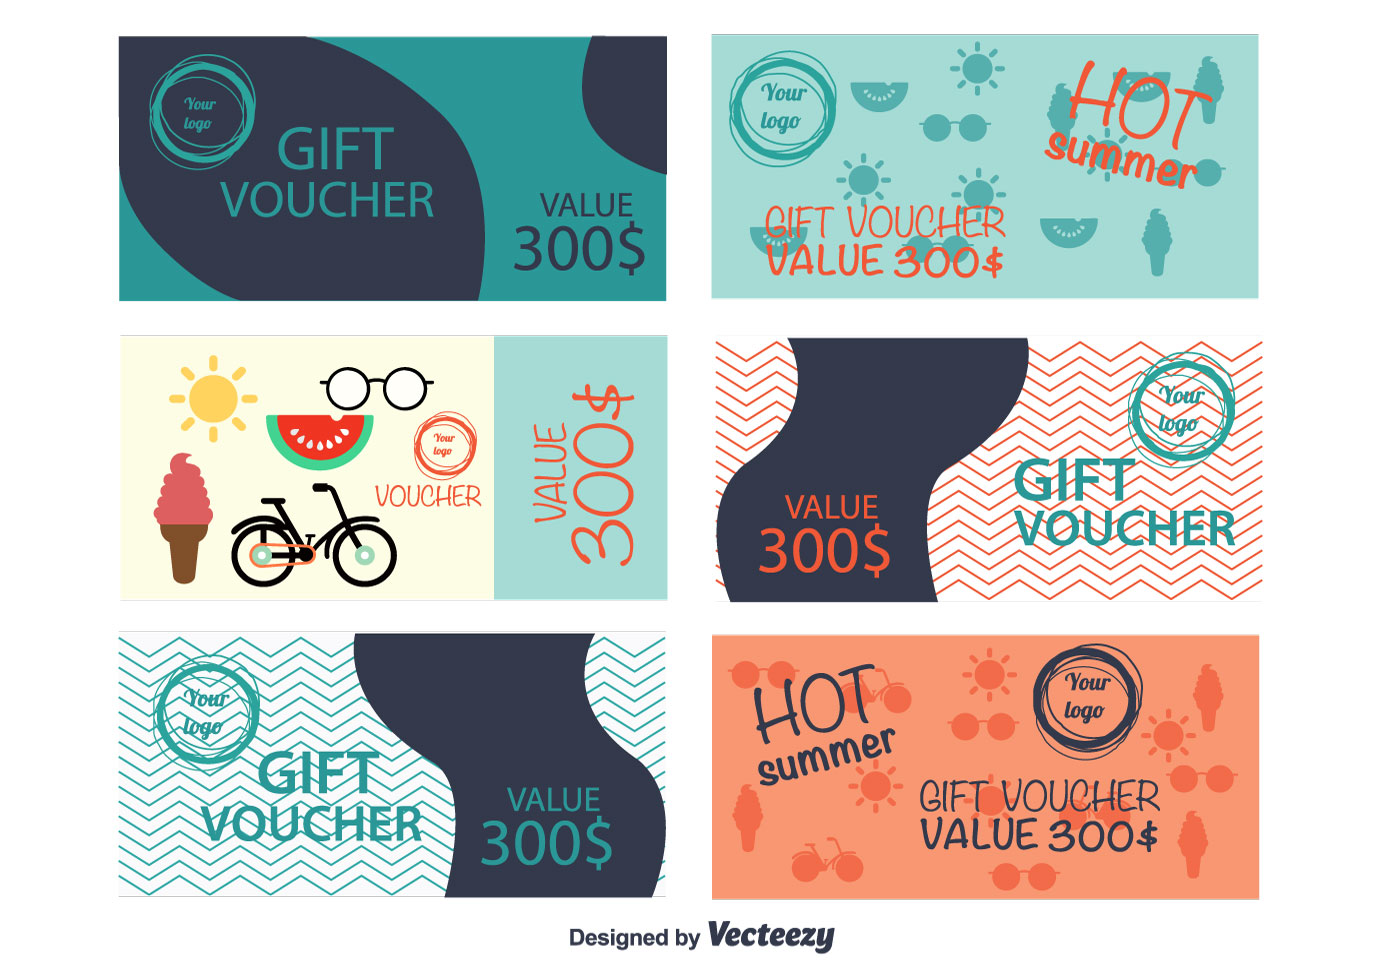 Summer gift vouchers download free vector art stock graphics summer gift vouchers download free vector art stock graphics images negle Image collections